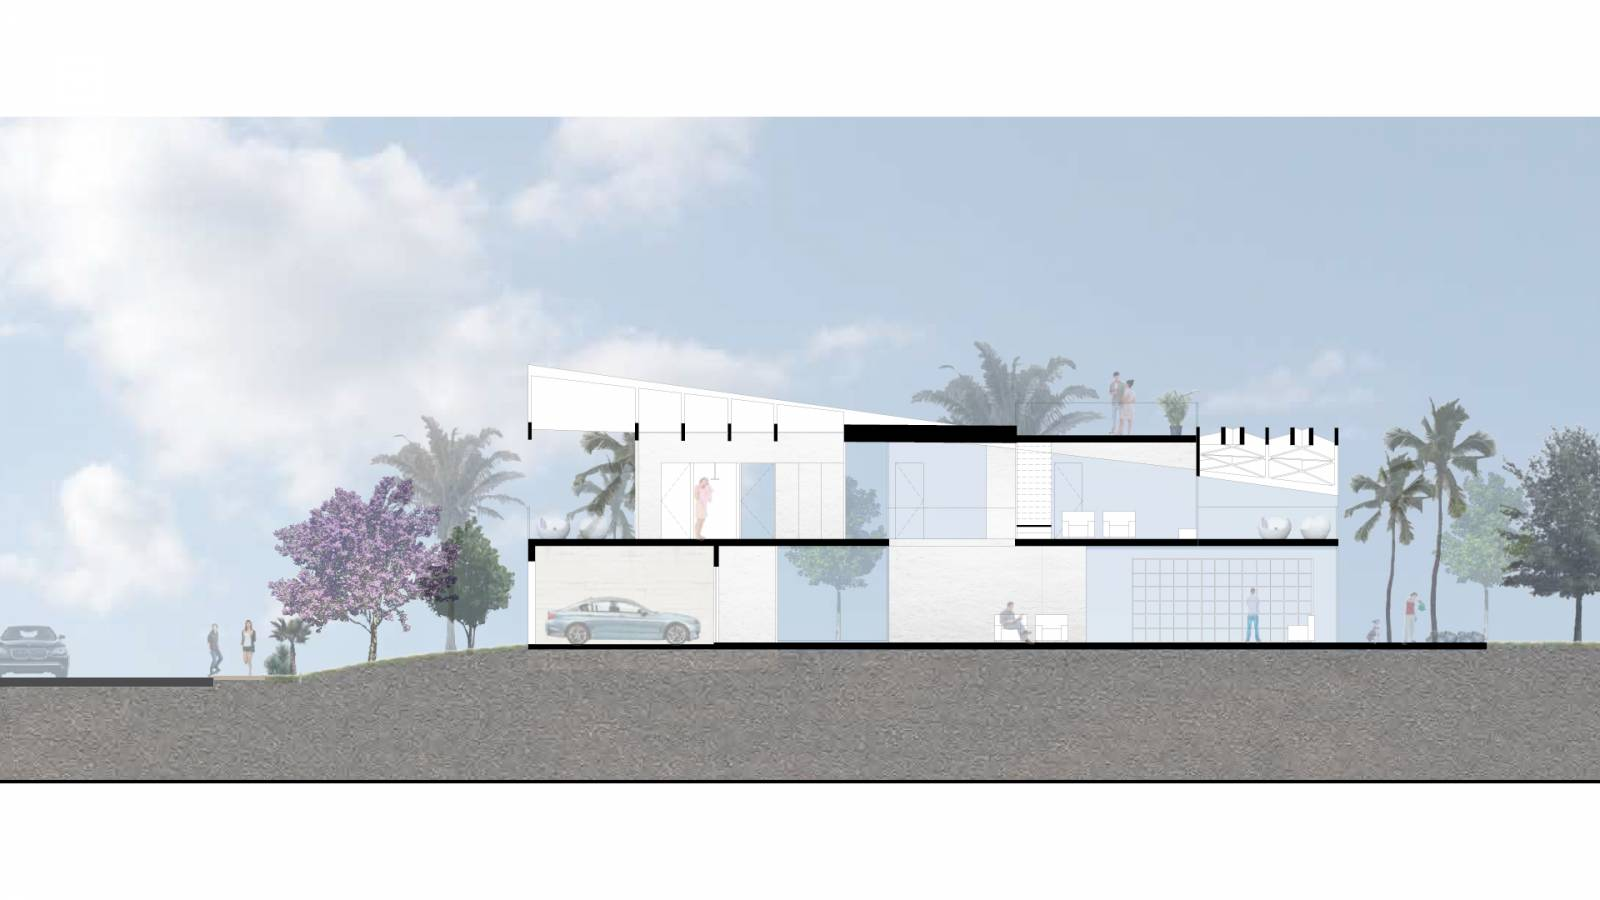 HOUSE #5 - SECTION - 6 case study houses - SPOL Architects